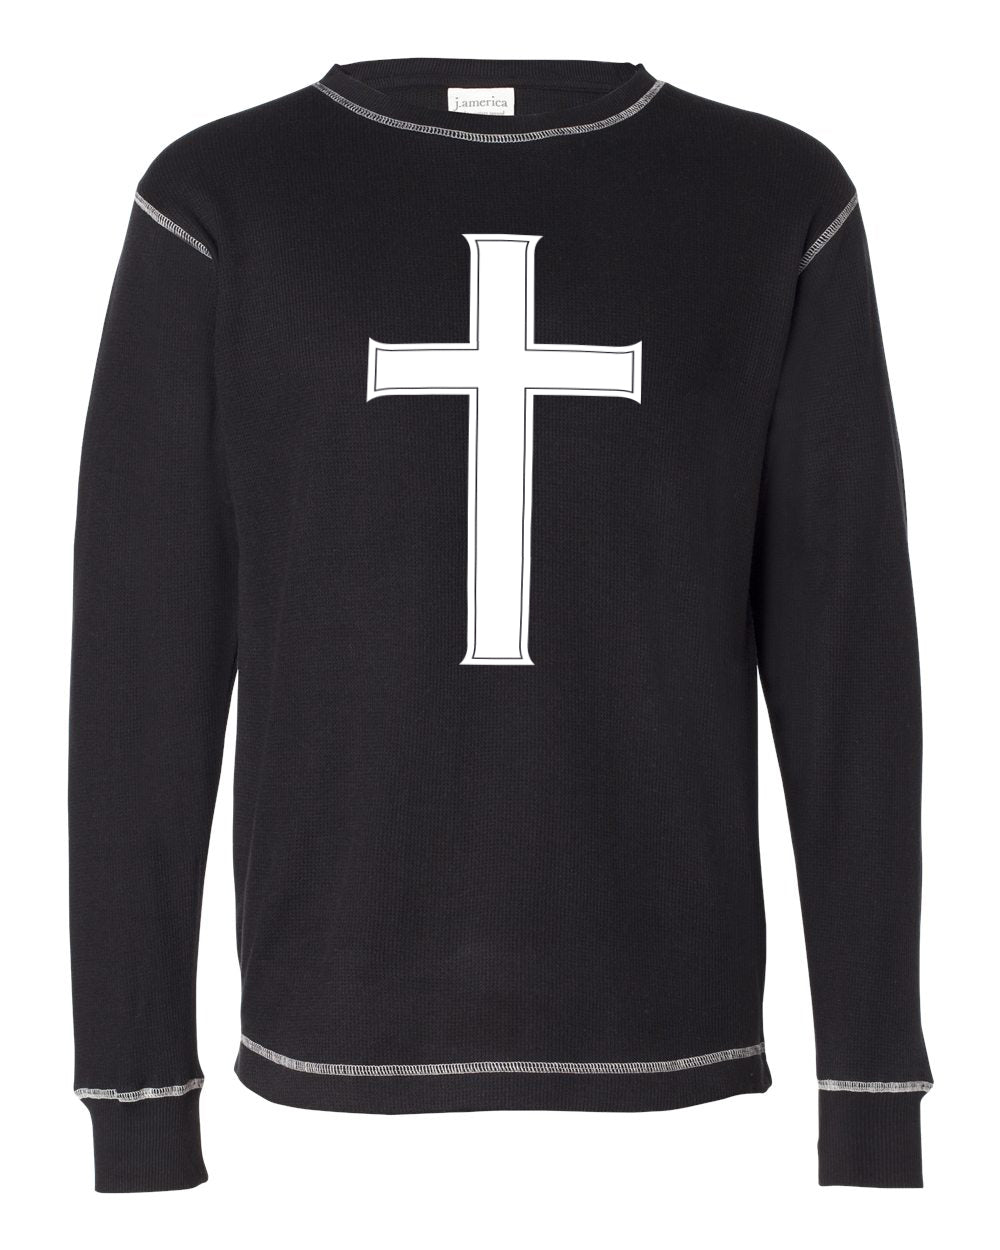 At the Cross Vintage Thermal Tee